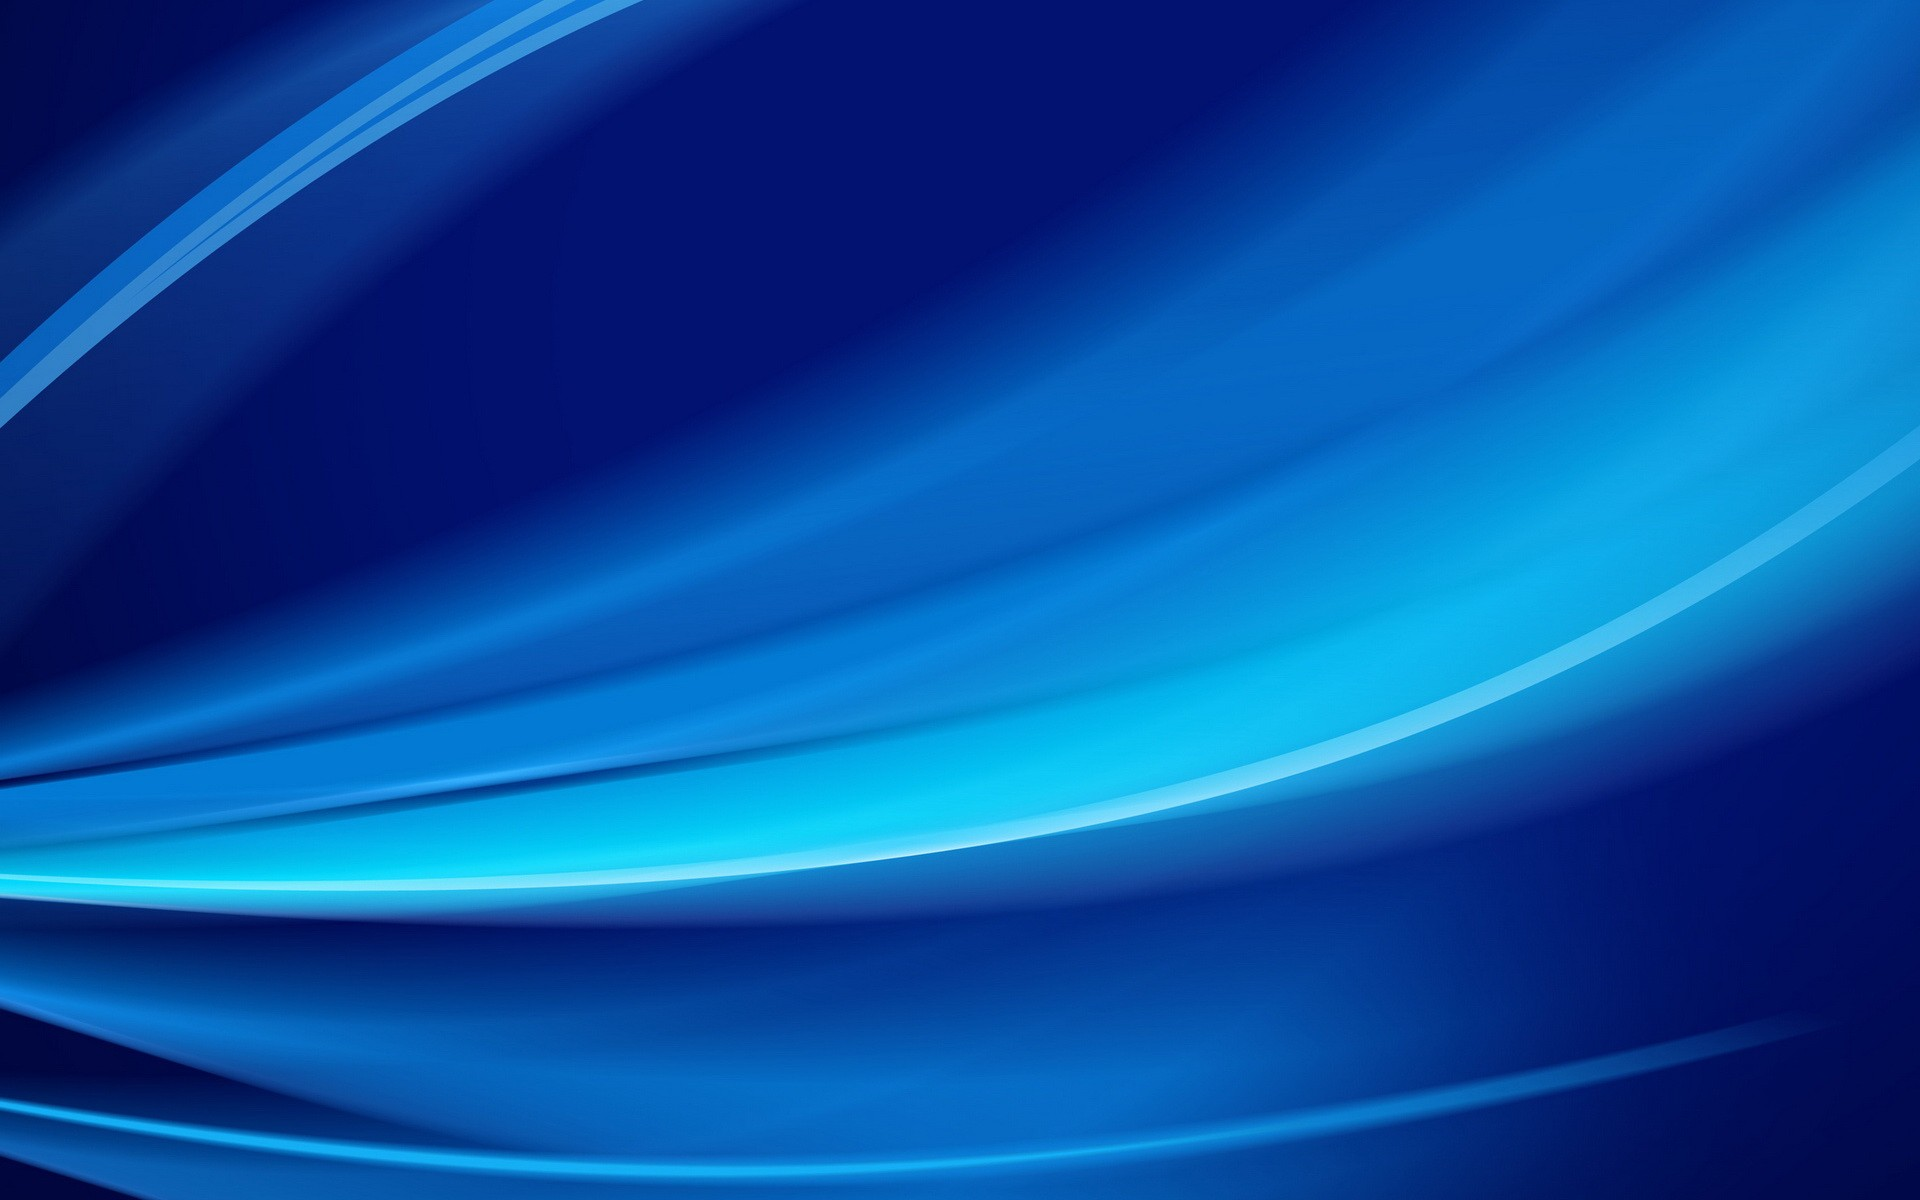 abstract blue ios 7 hd wallpaper background   HD Wallpapers 1920x1200